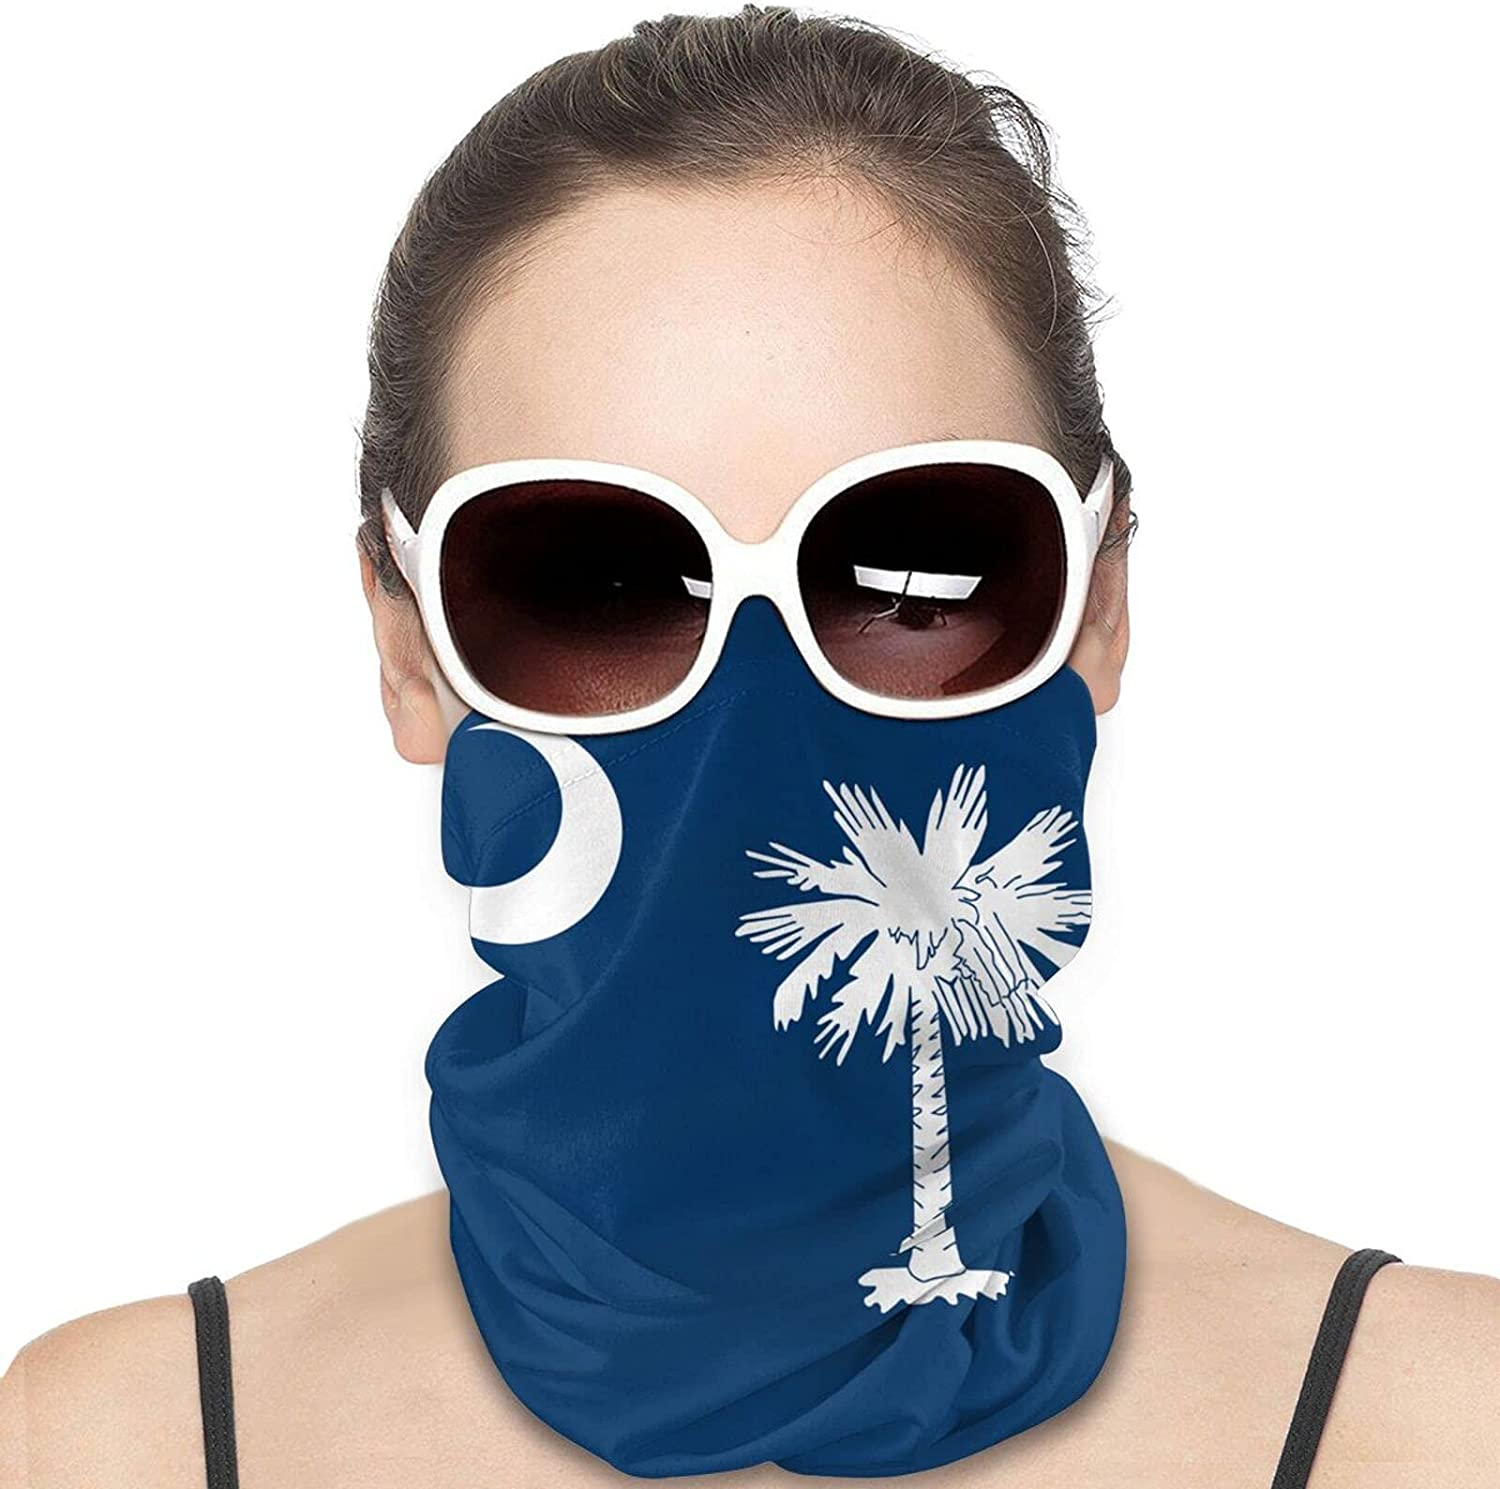 South Carolina State Flag Round Neck Gaiter Bandnas Face Cover Uv Protection Prevent bask in Ice Scarf Headbands Perfect for Motorcycle Cycling Running Festival Raves Outdoors